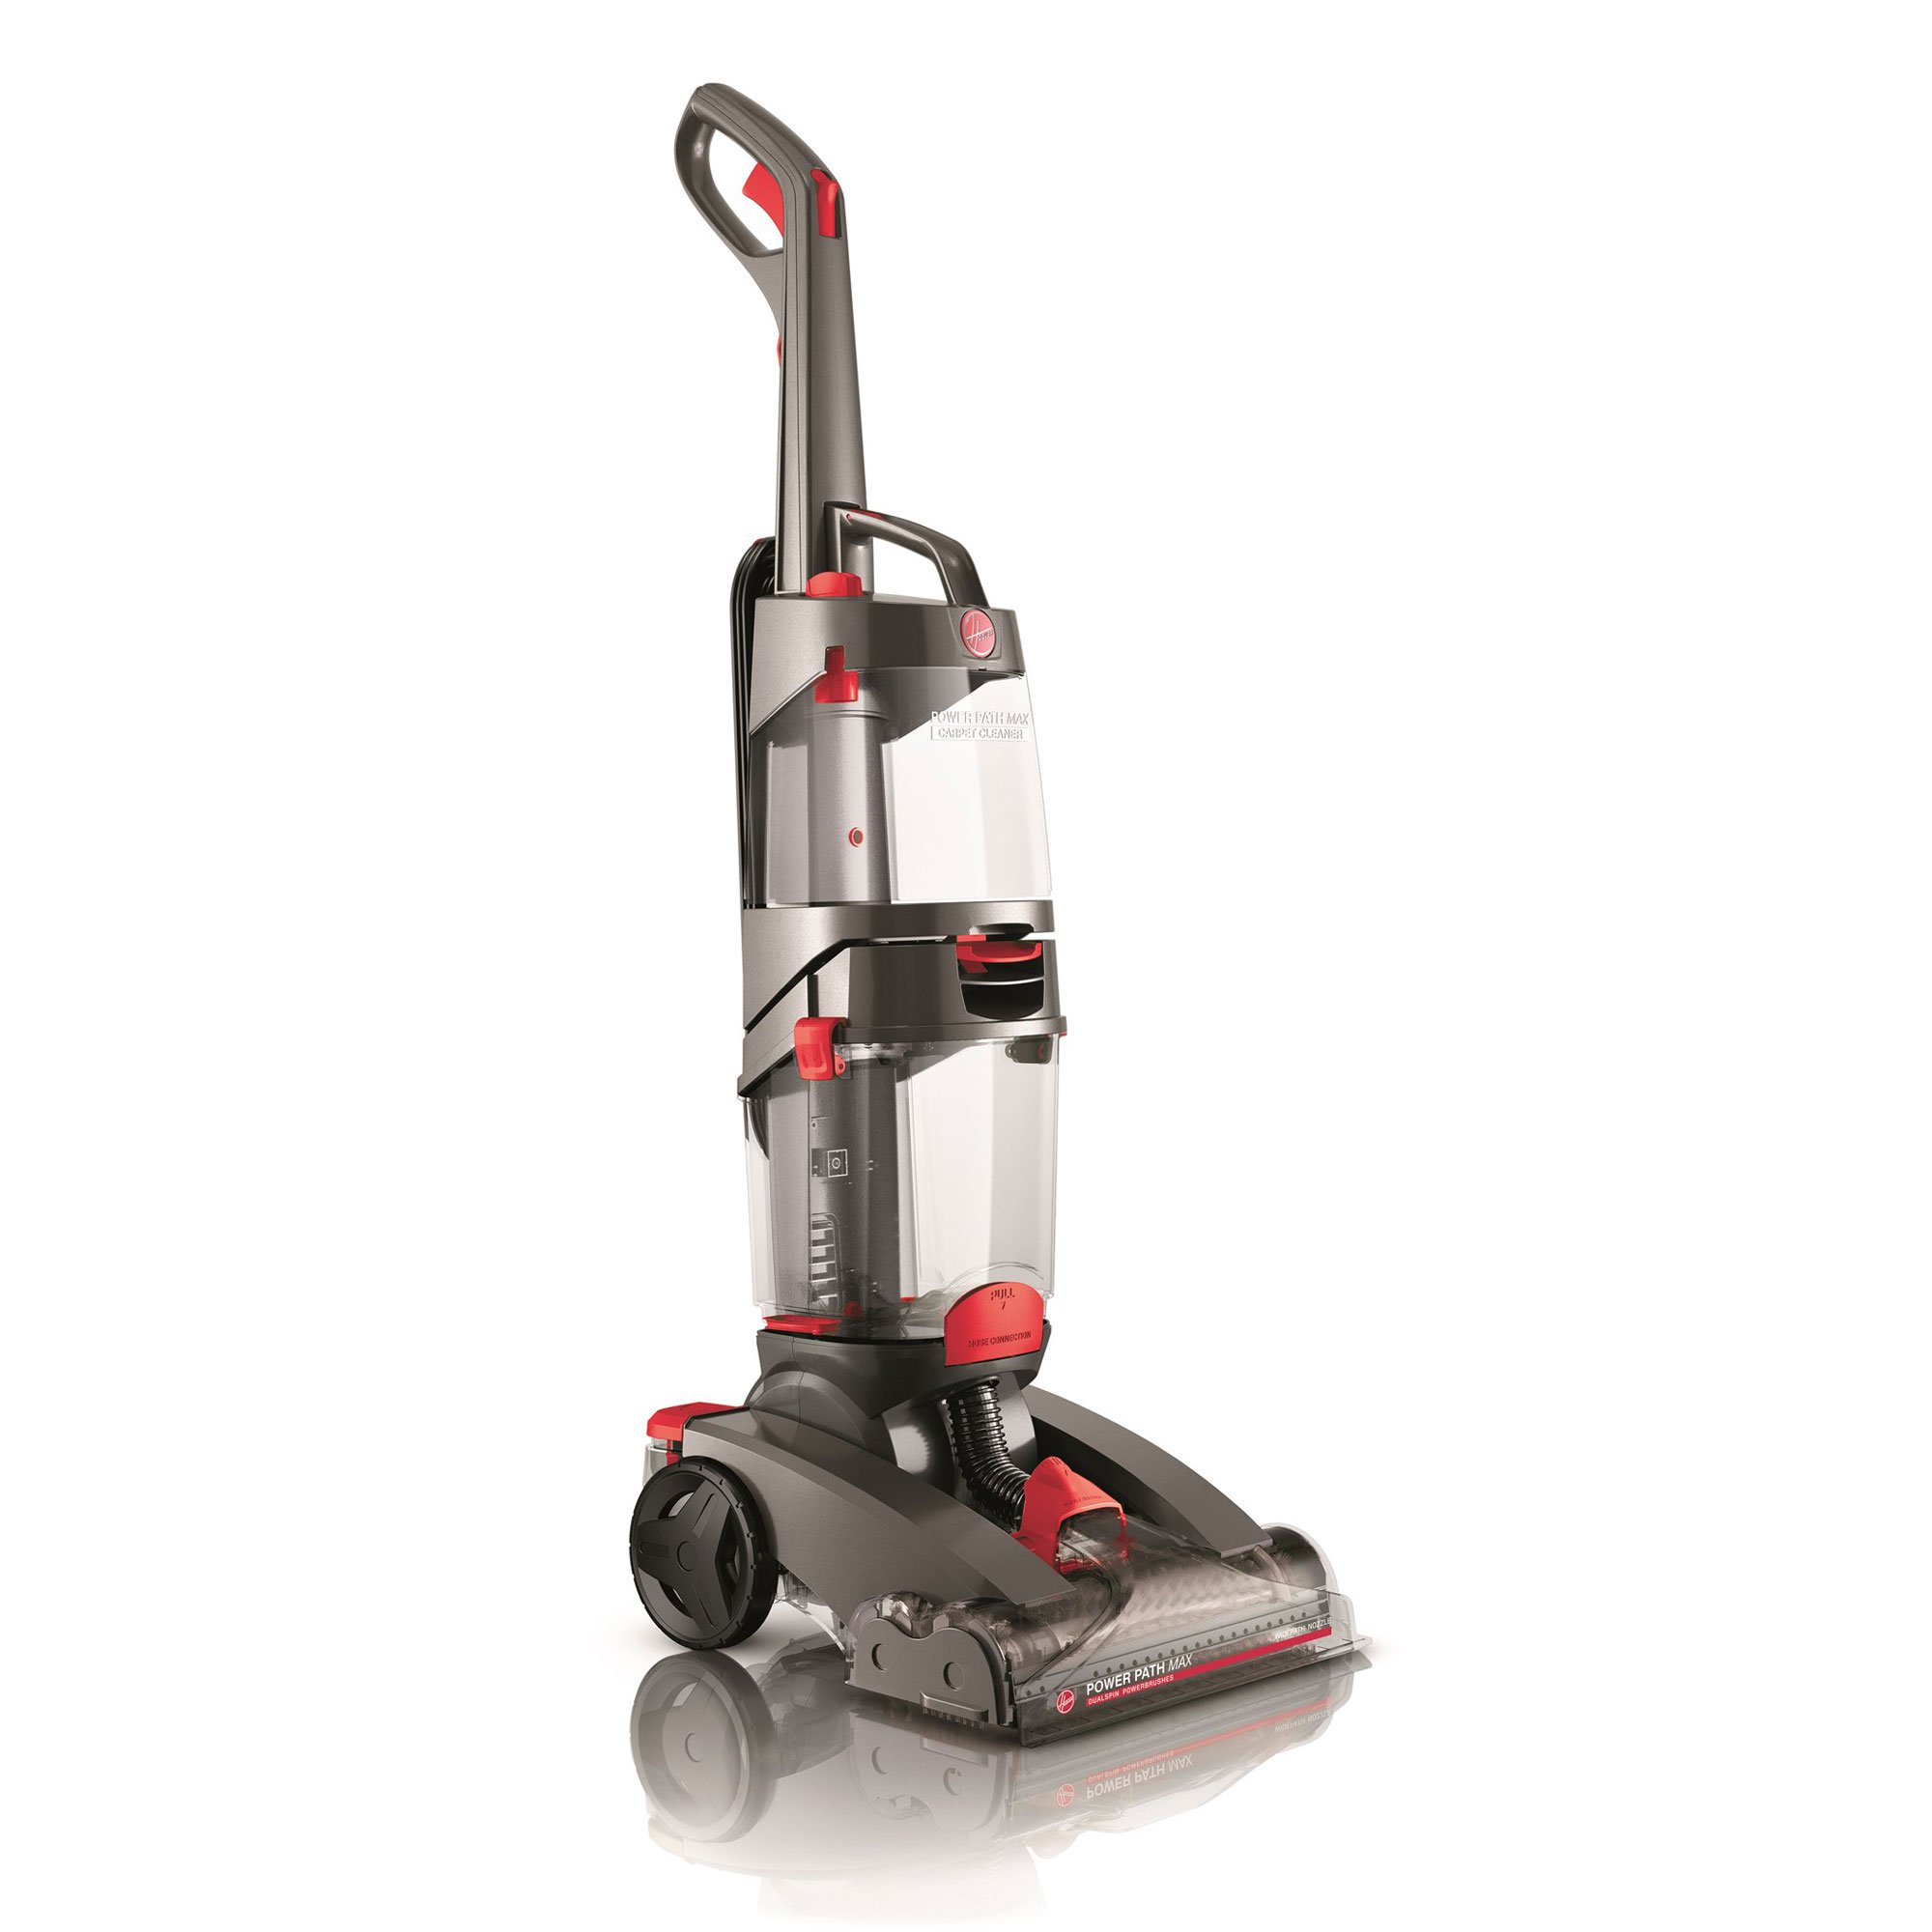 Carpet Cleaning Vacuum Hoover Fh51002 Dual Power Path Max Pet Upright Carpet Cleaner